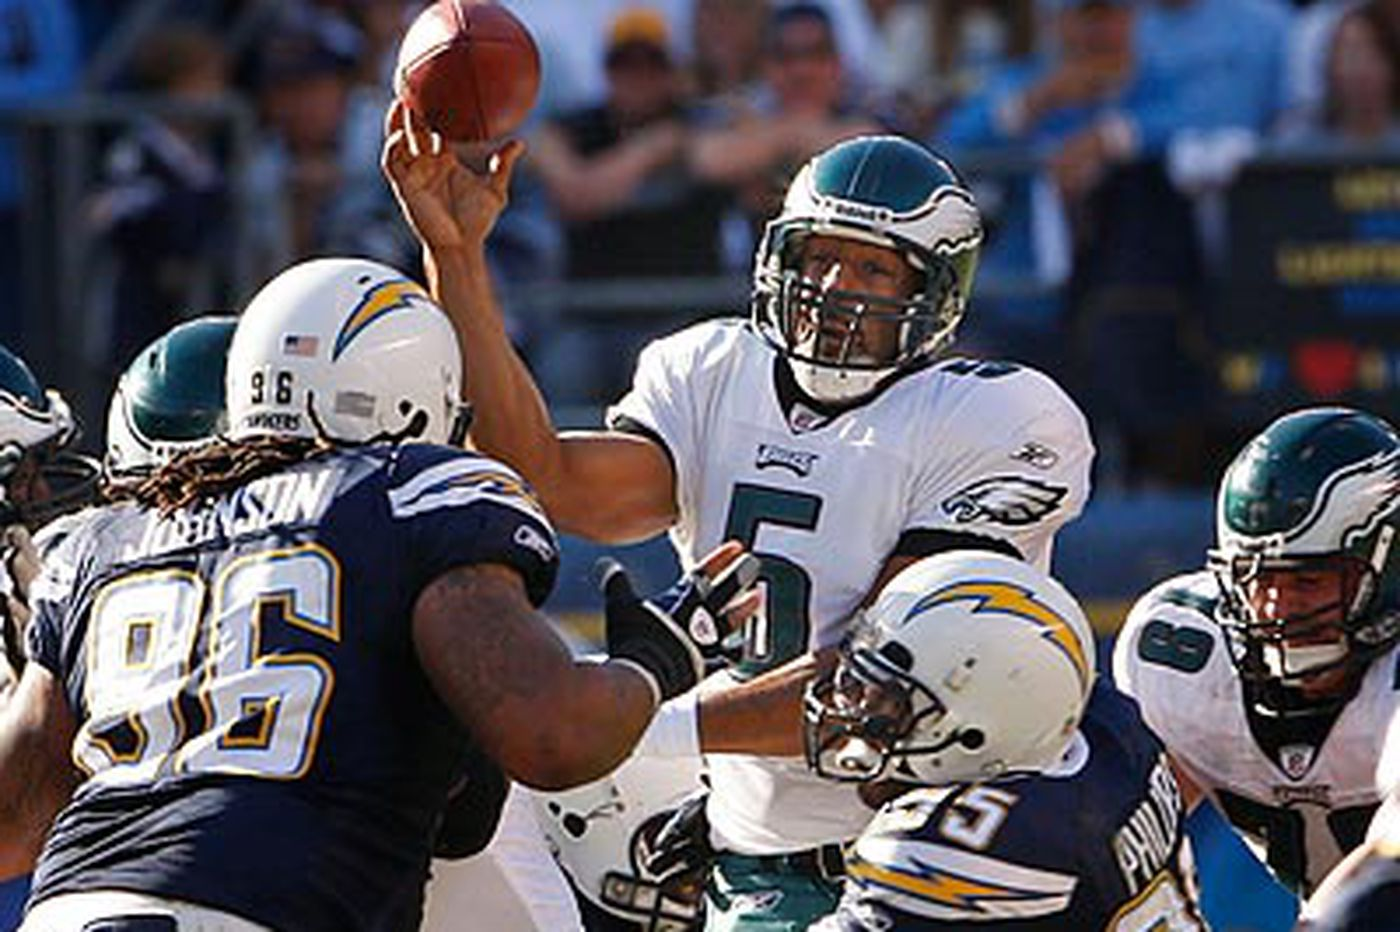 In loss to Chargers, McNabb puts up career passing numbers